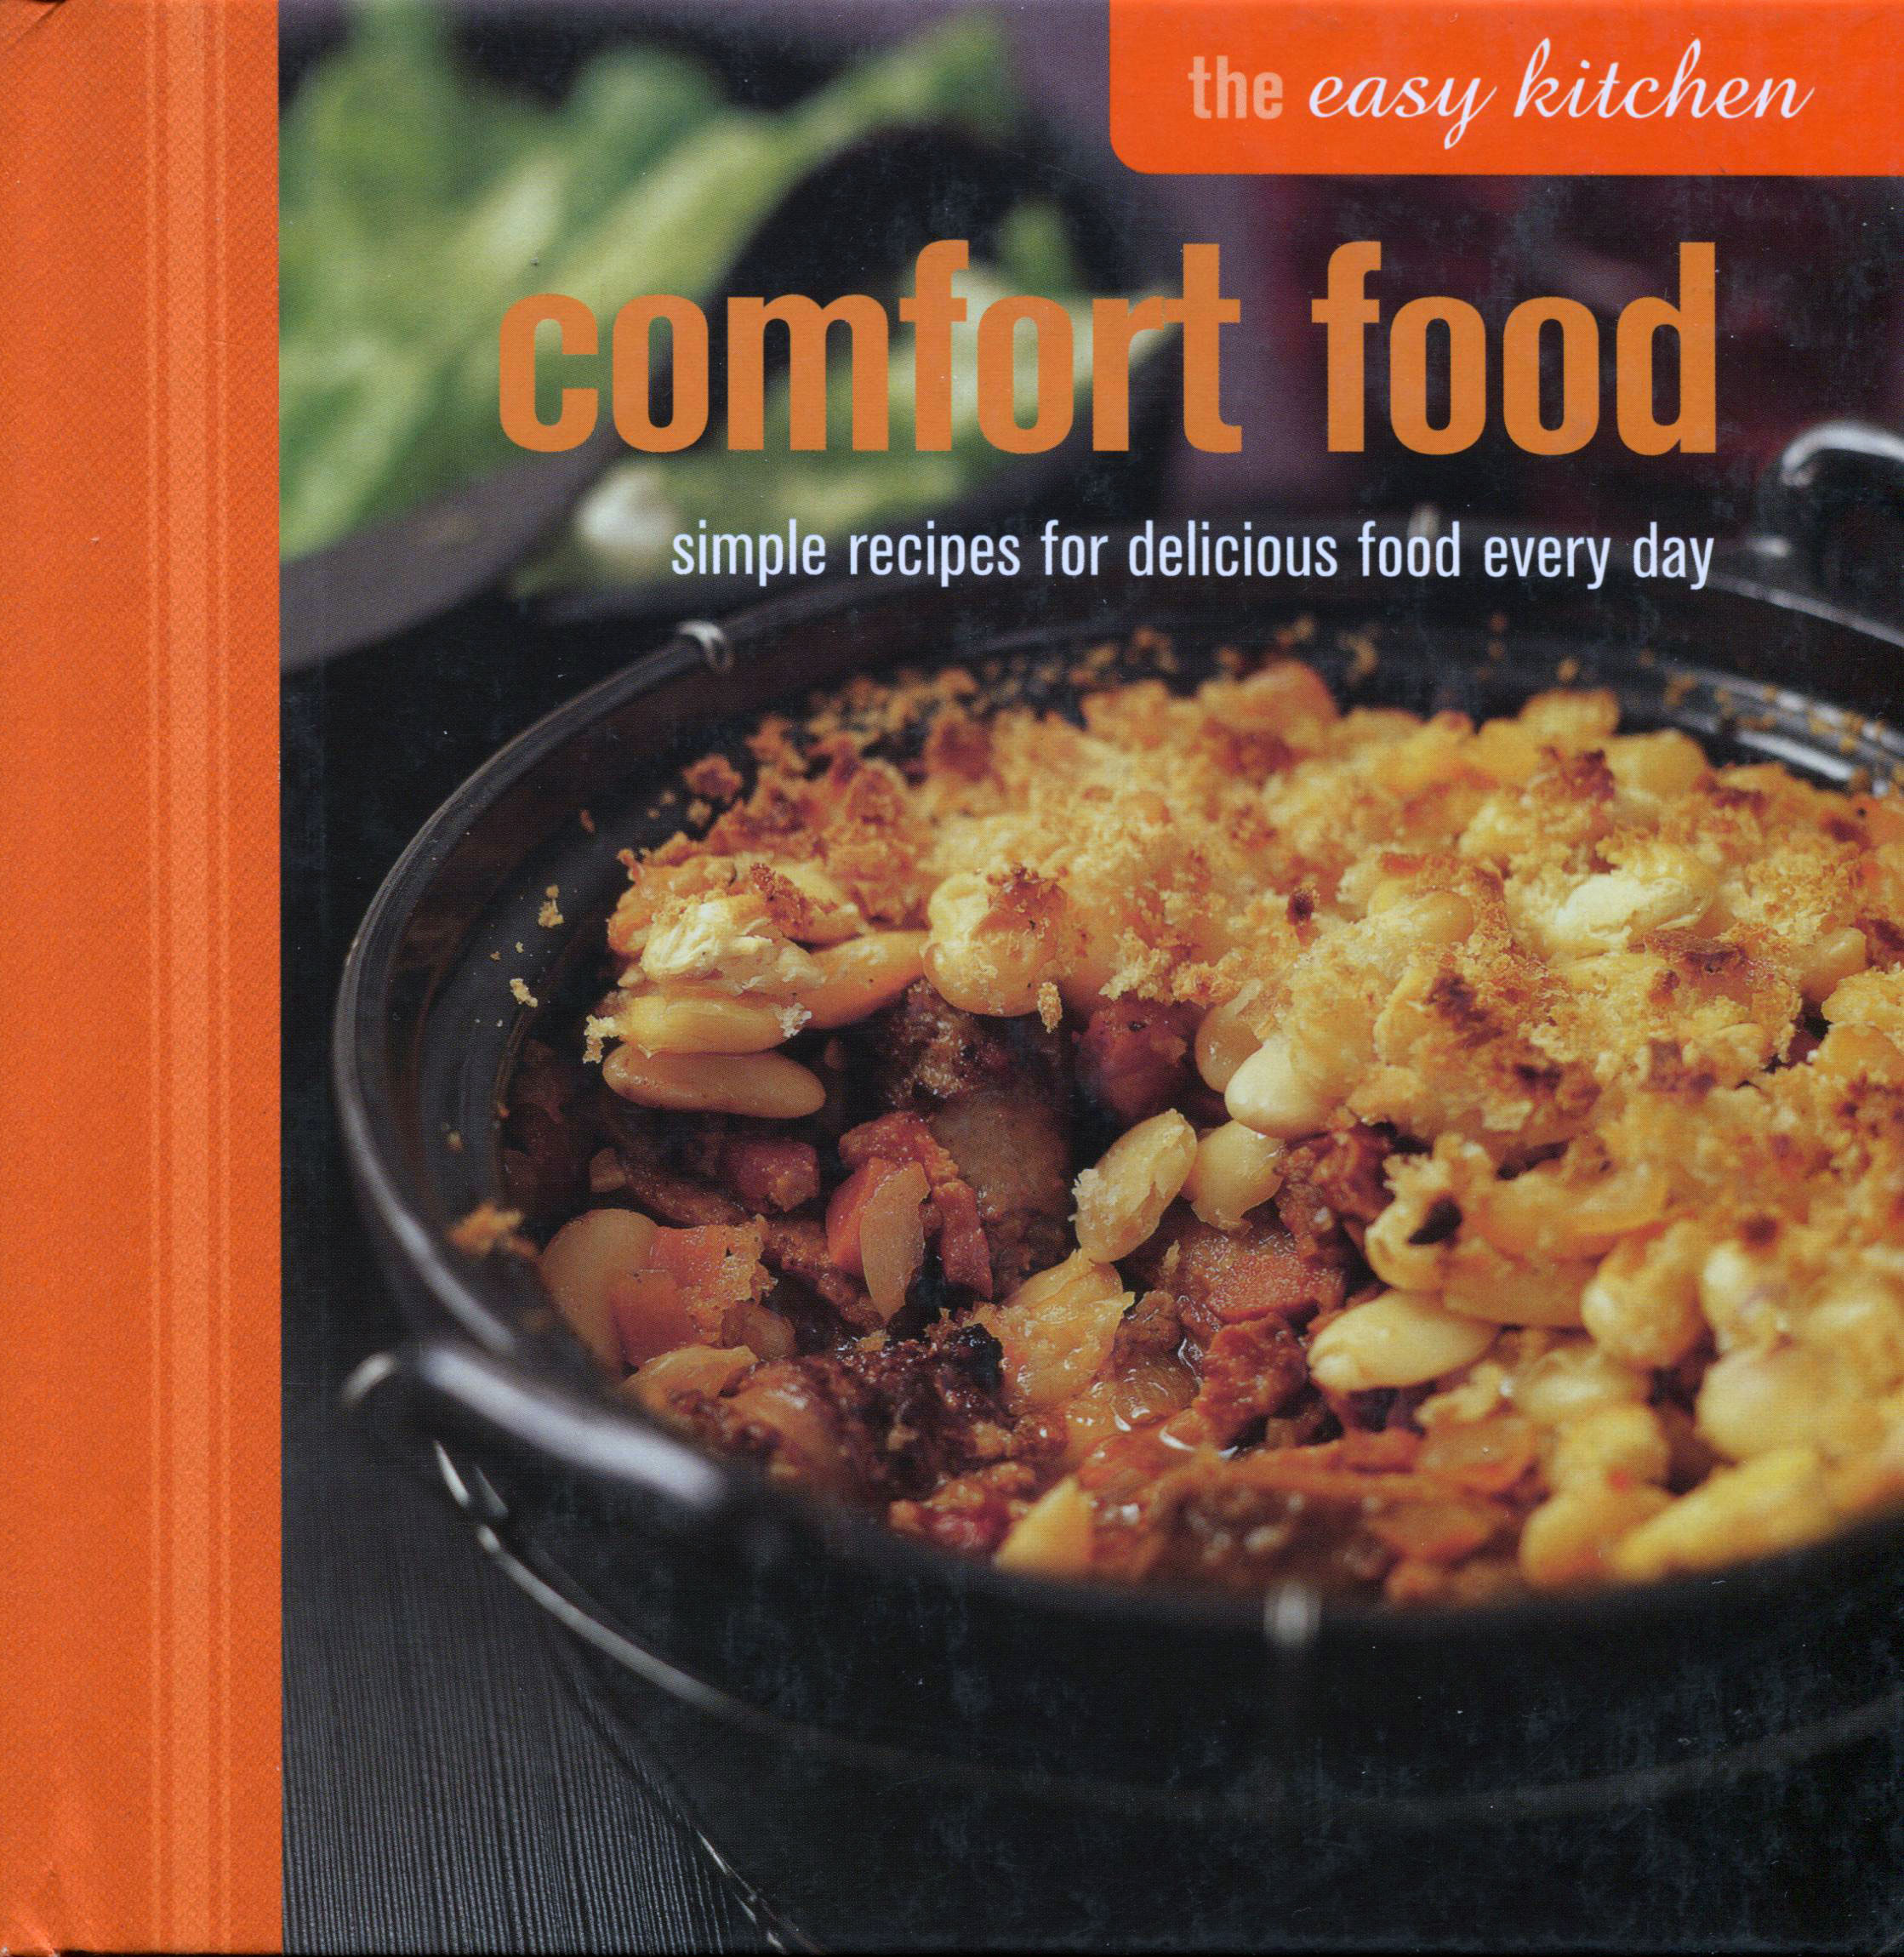 Best of Cookbook Review: Comfort Food from Ryland Peters and Small